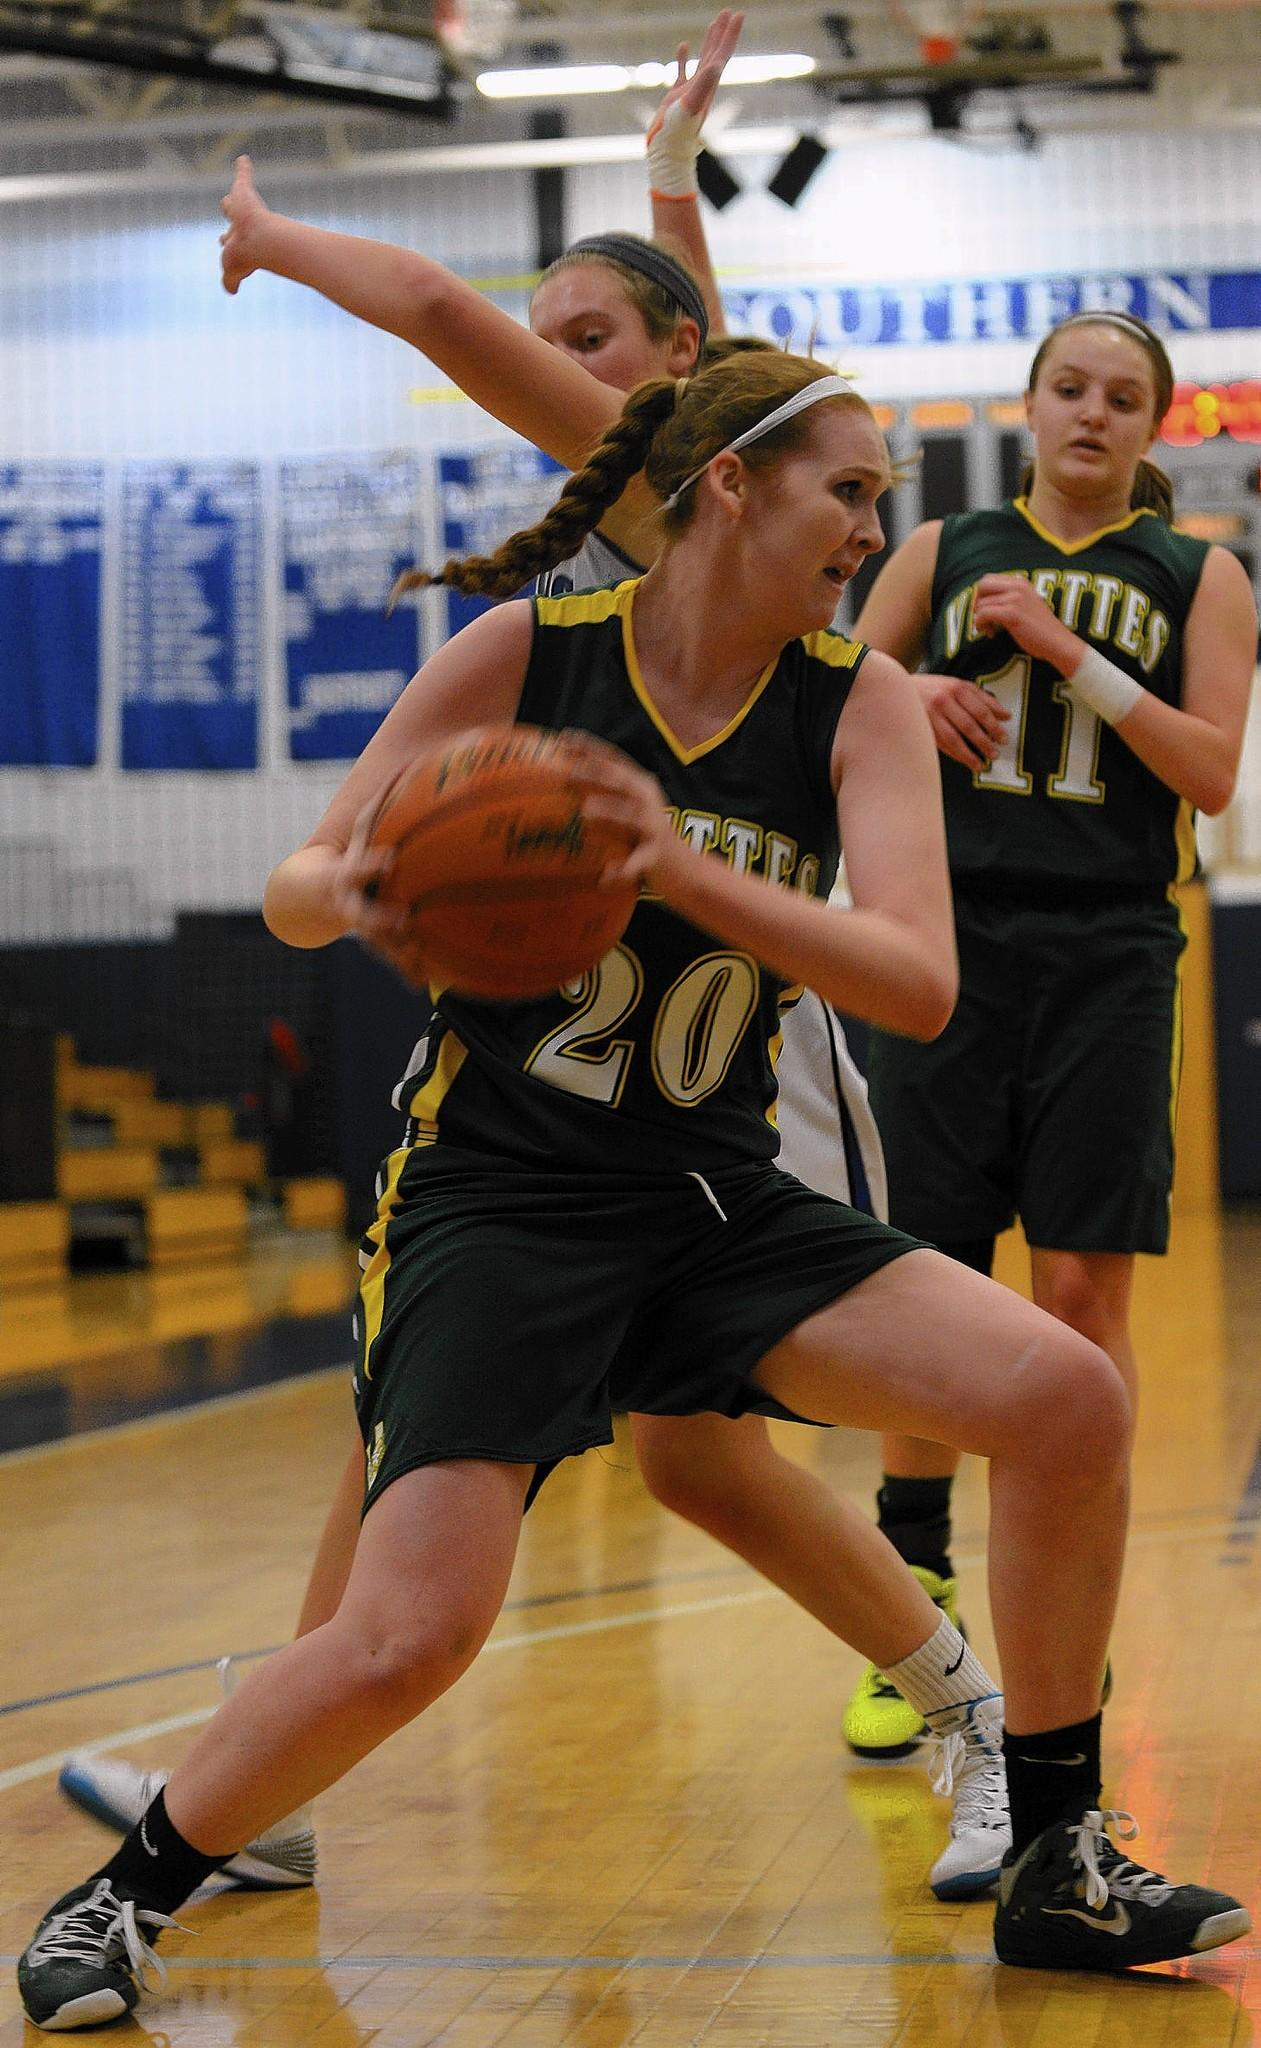 Central Catholic's Emma Redding (20) with the ball. Southern Lehigh High School girls basketball team played Allentown Central Catholic High School at Southern Lehigh High School Monday night.